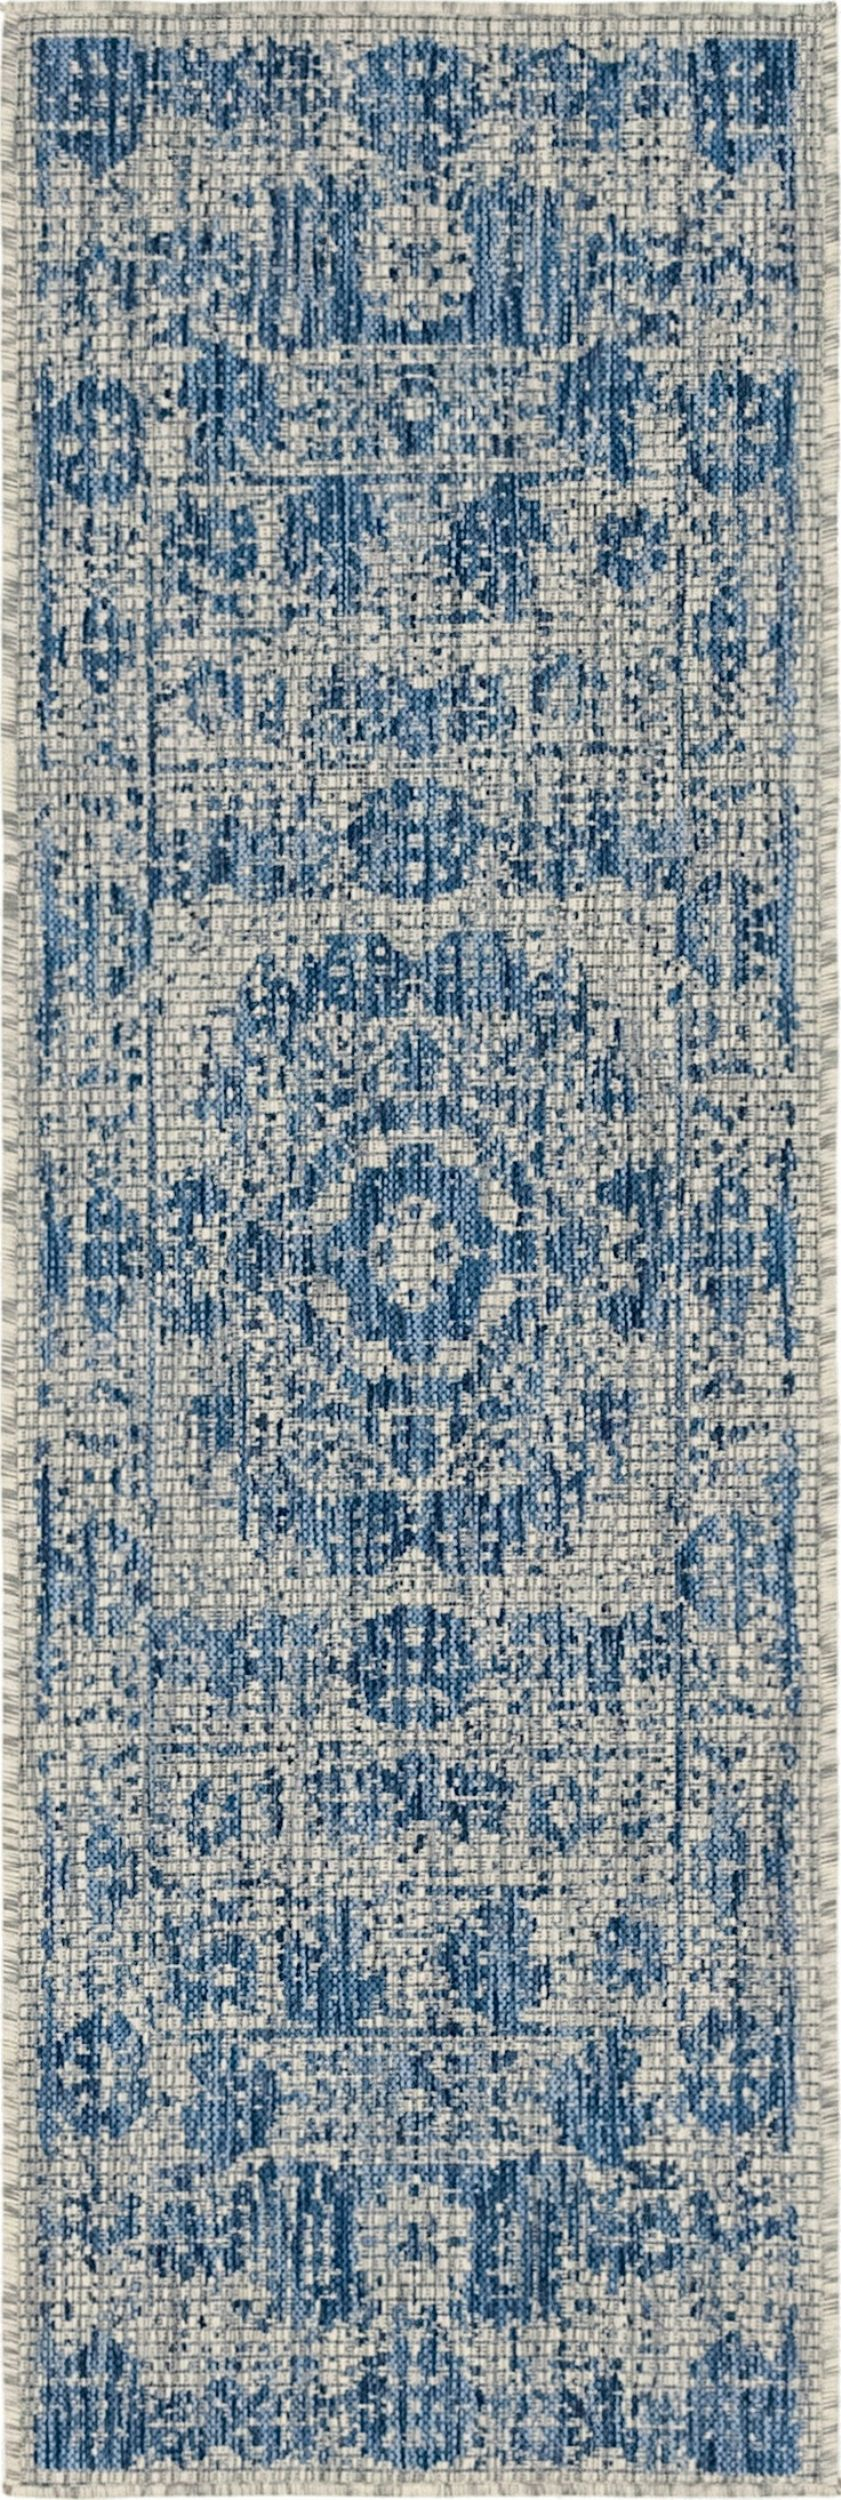 rugpal nile indoor/outdoor area rug collection